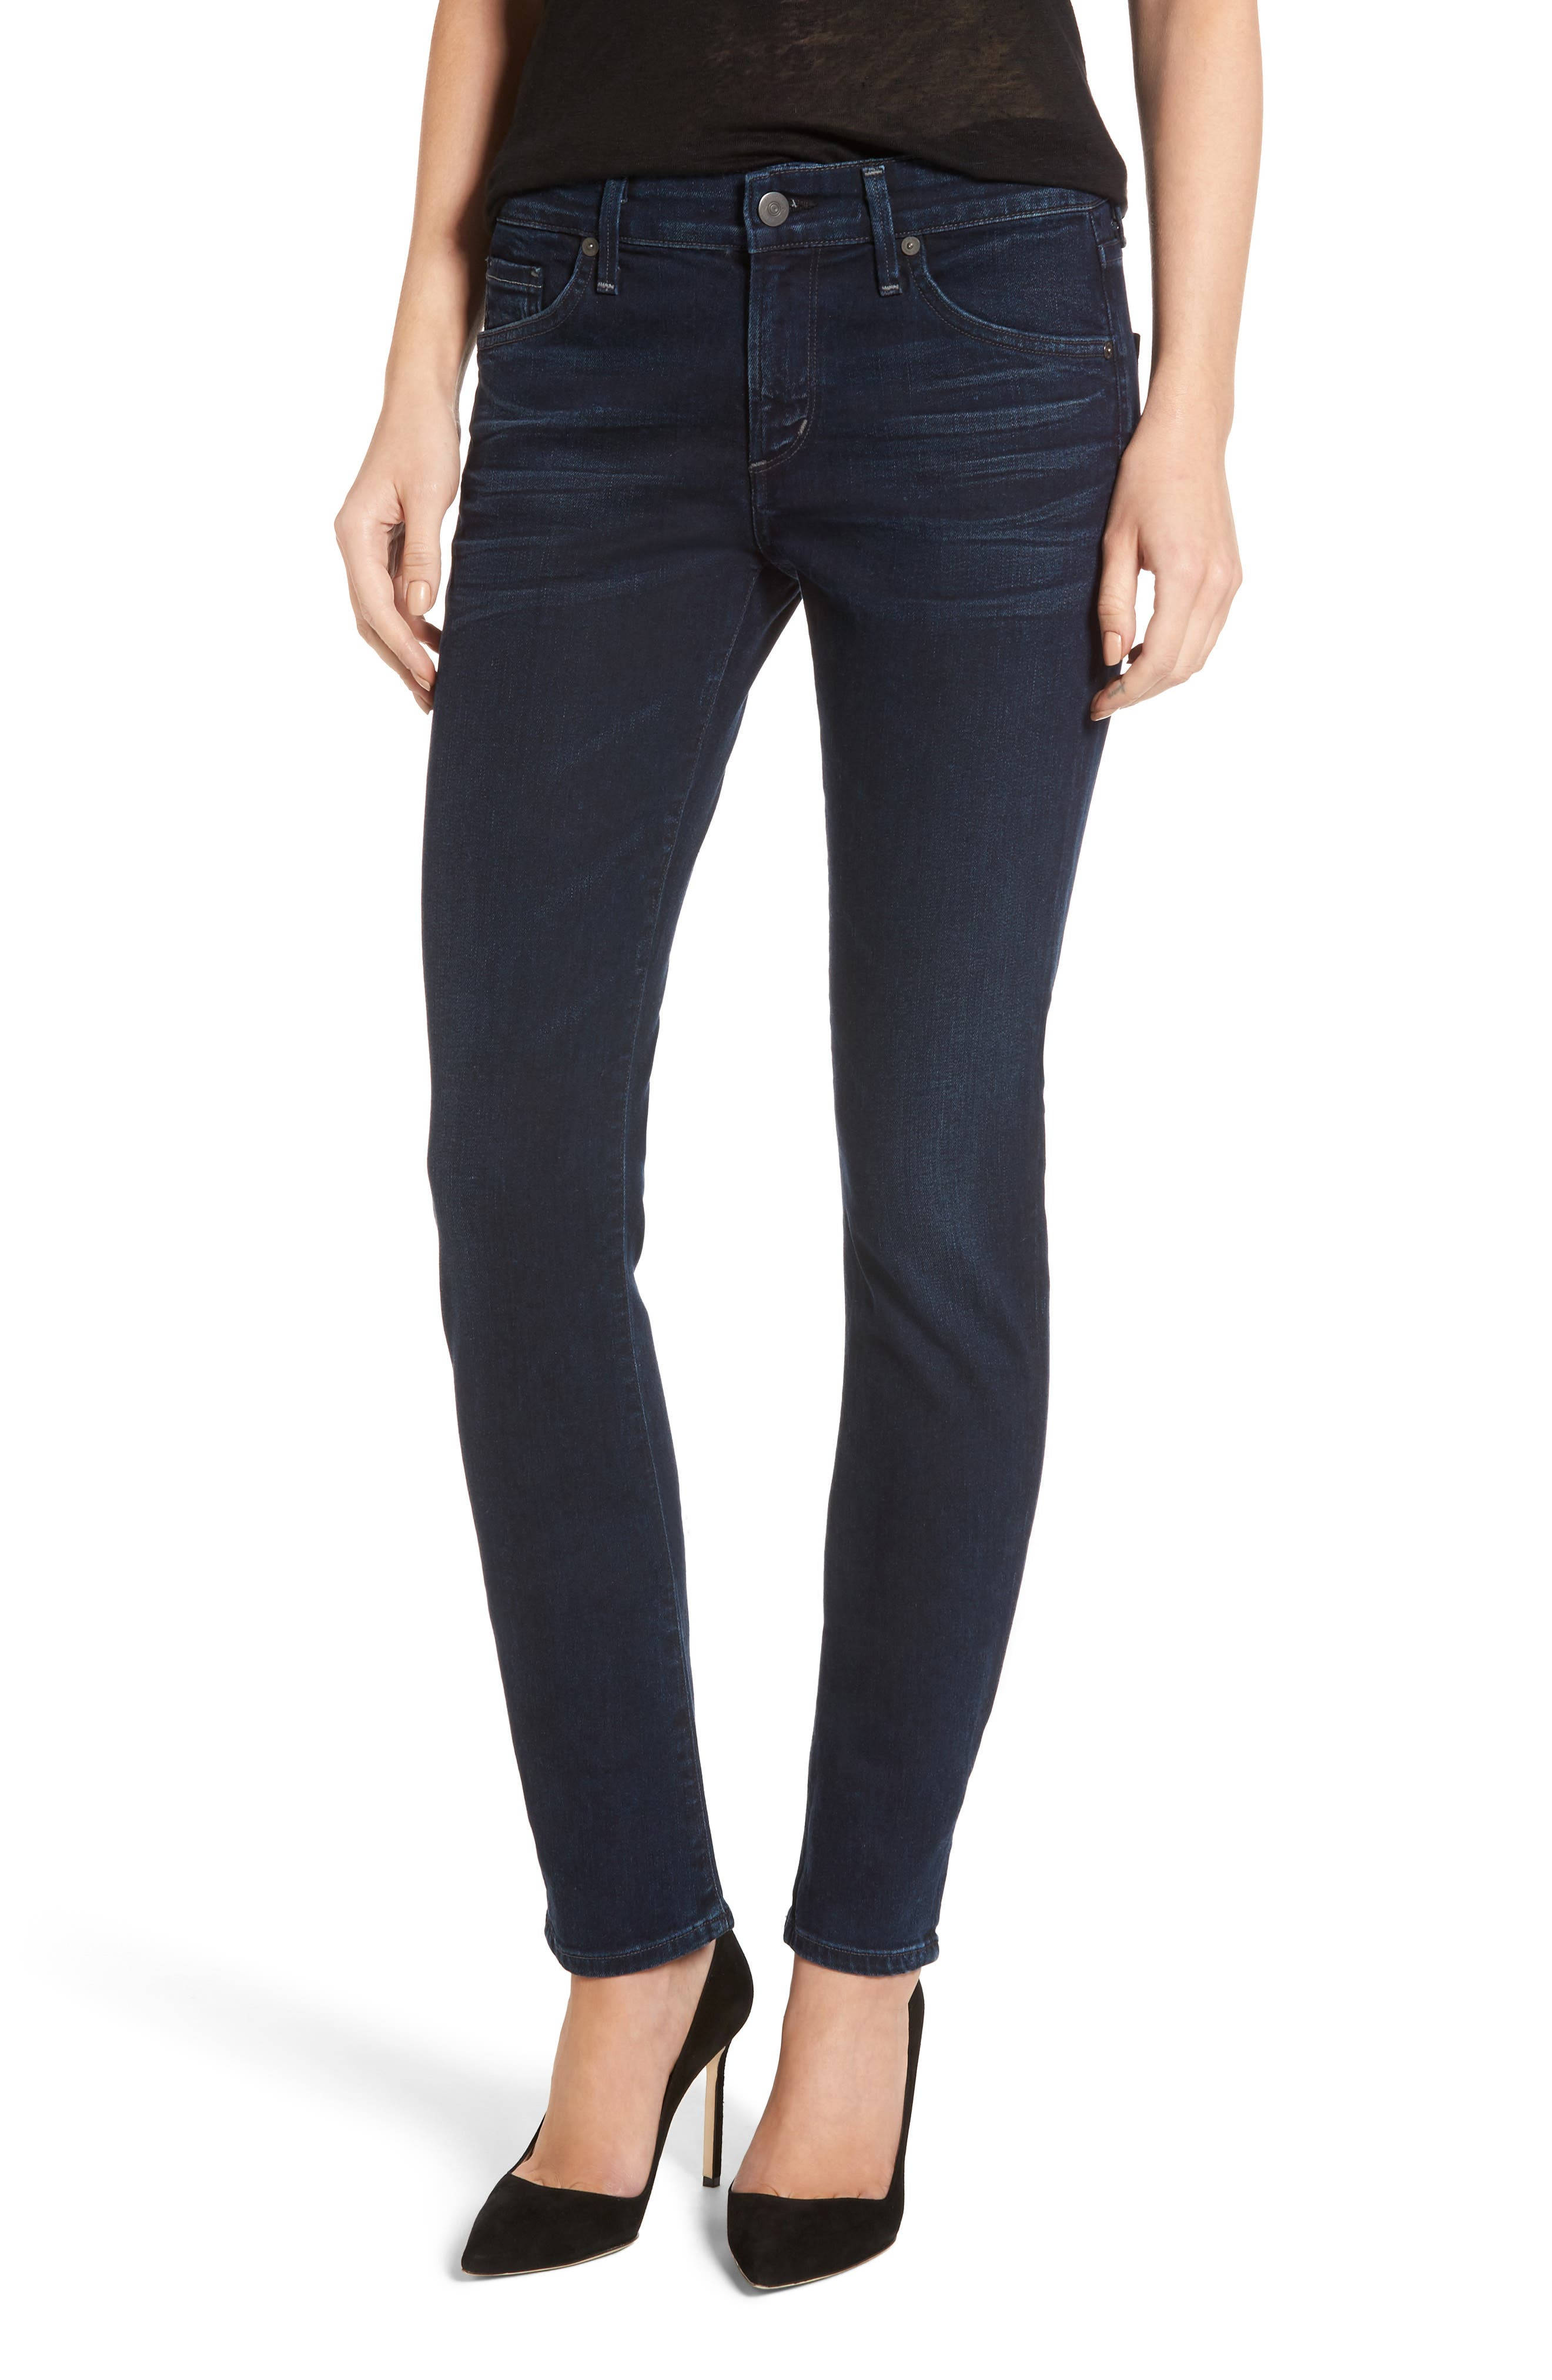 Arielle Skinny Jeans,                             Main thumbnail 1, color,                             406